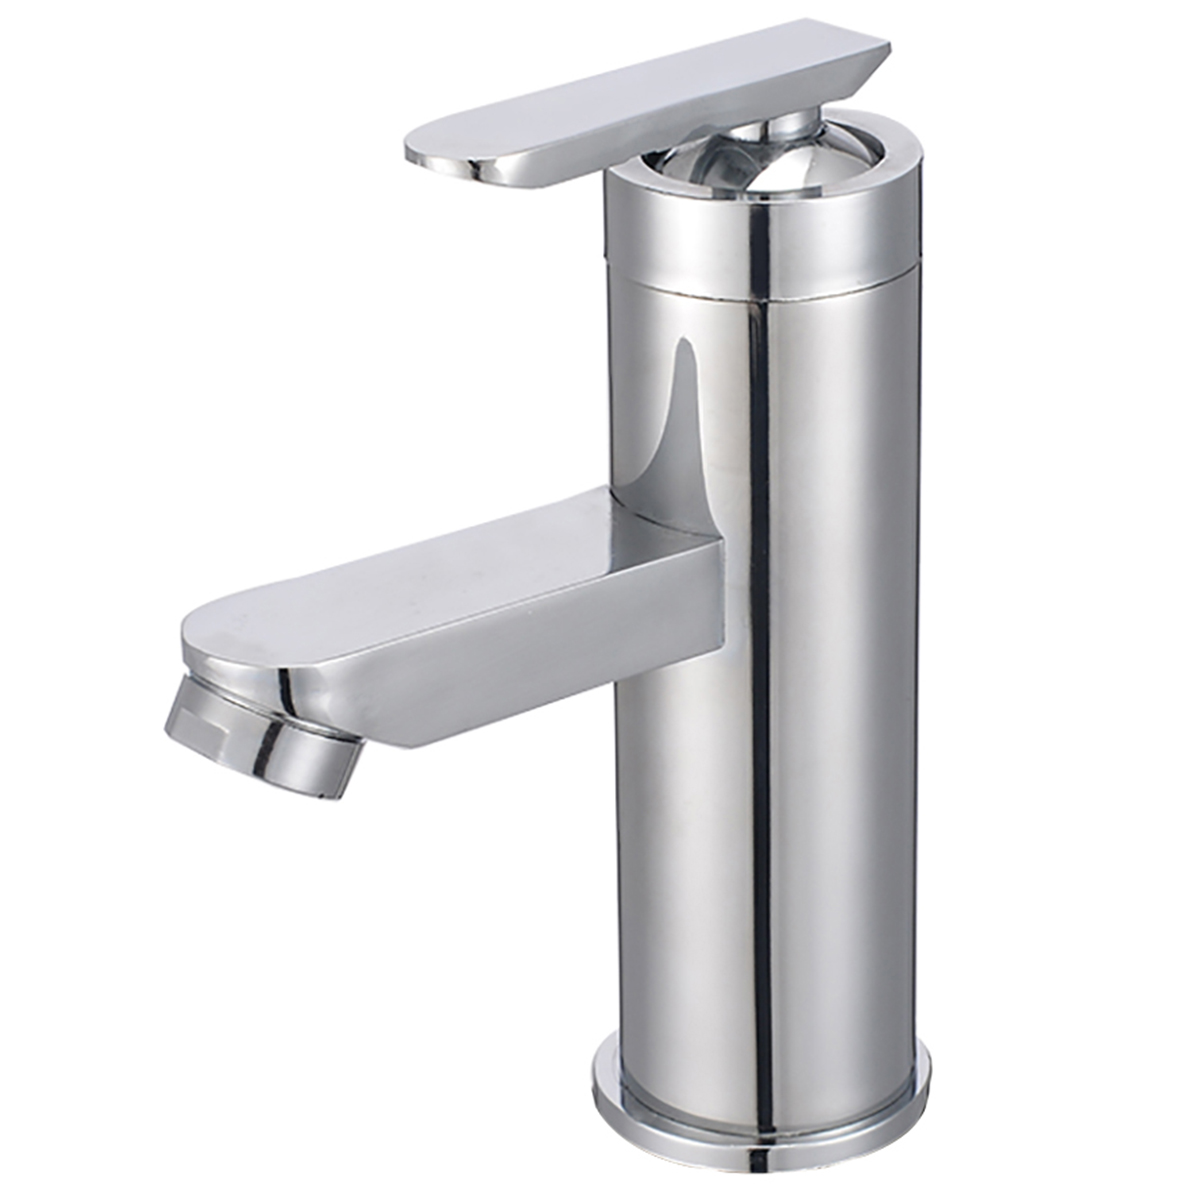 Faucet Single Handle Sink Bathroom Basin alloy Faucet Cold Hot Mixer Tap Kitchen Faucet Waterfall for Bathroom Kitchen Shampoo